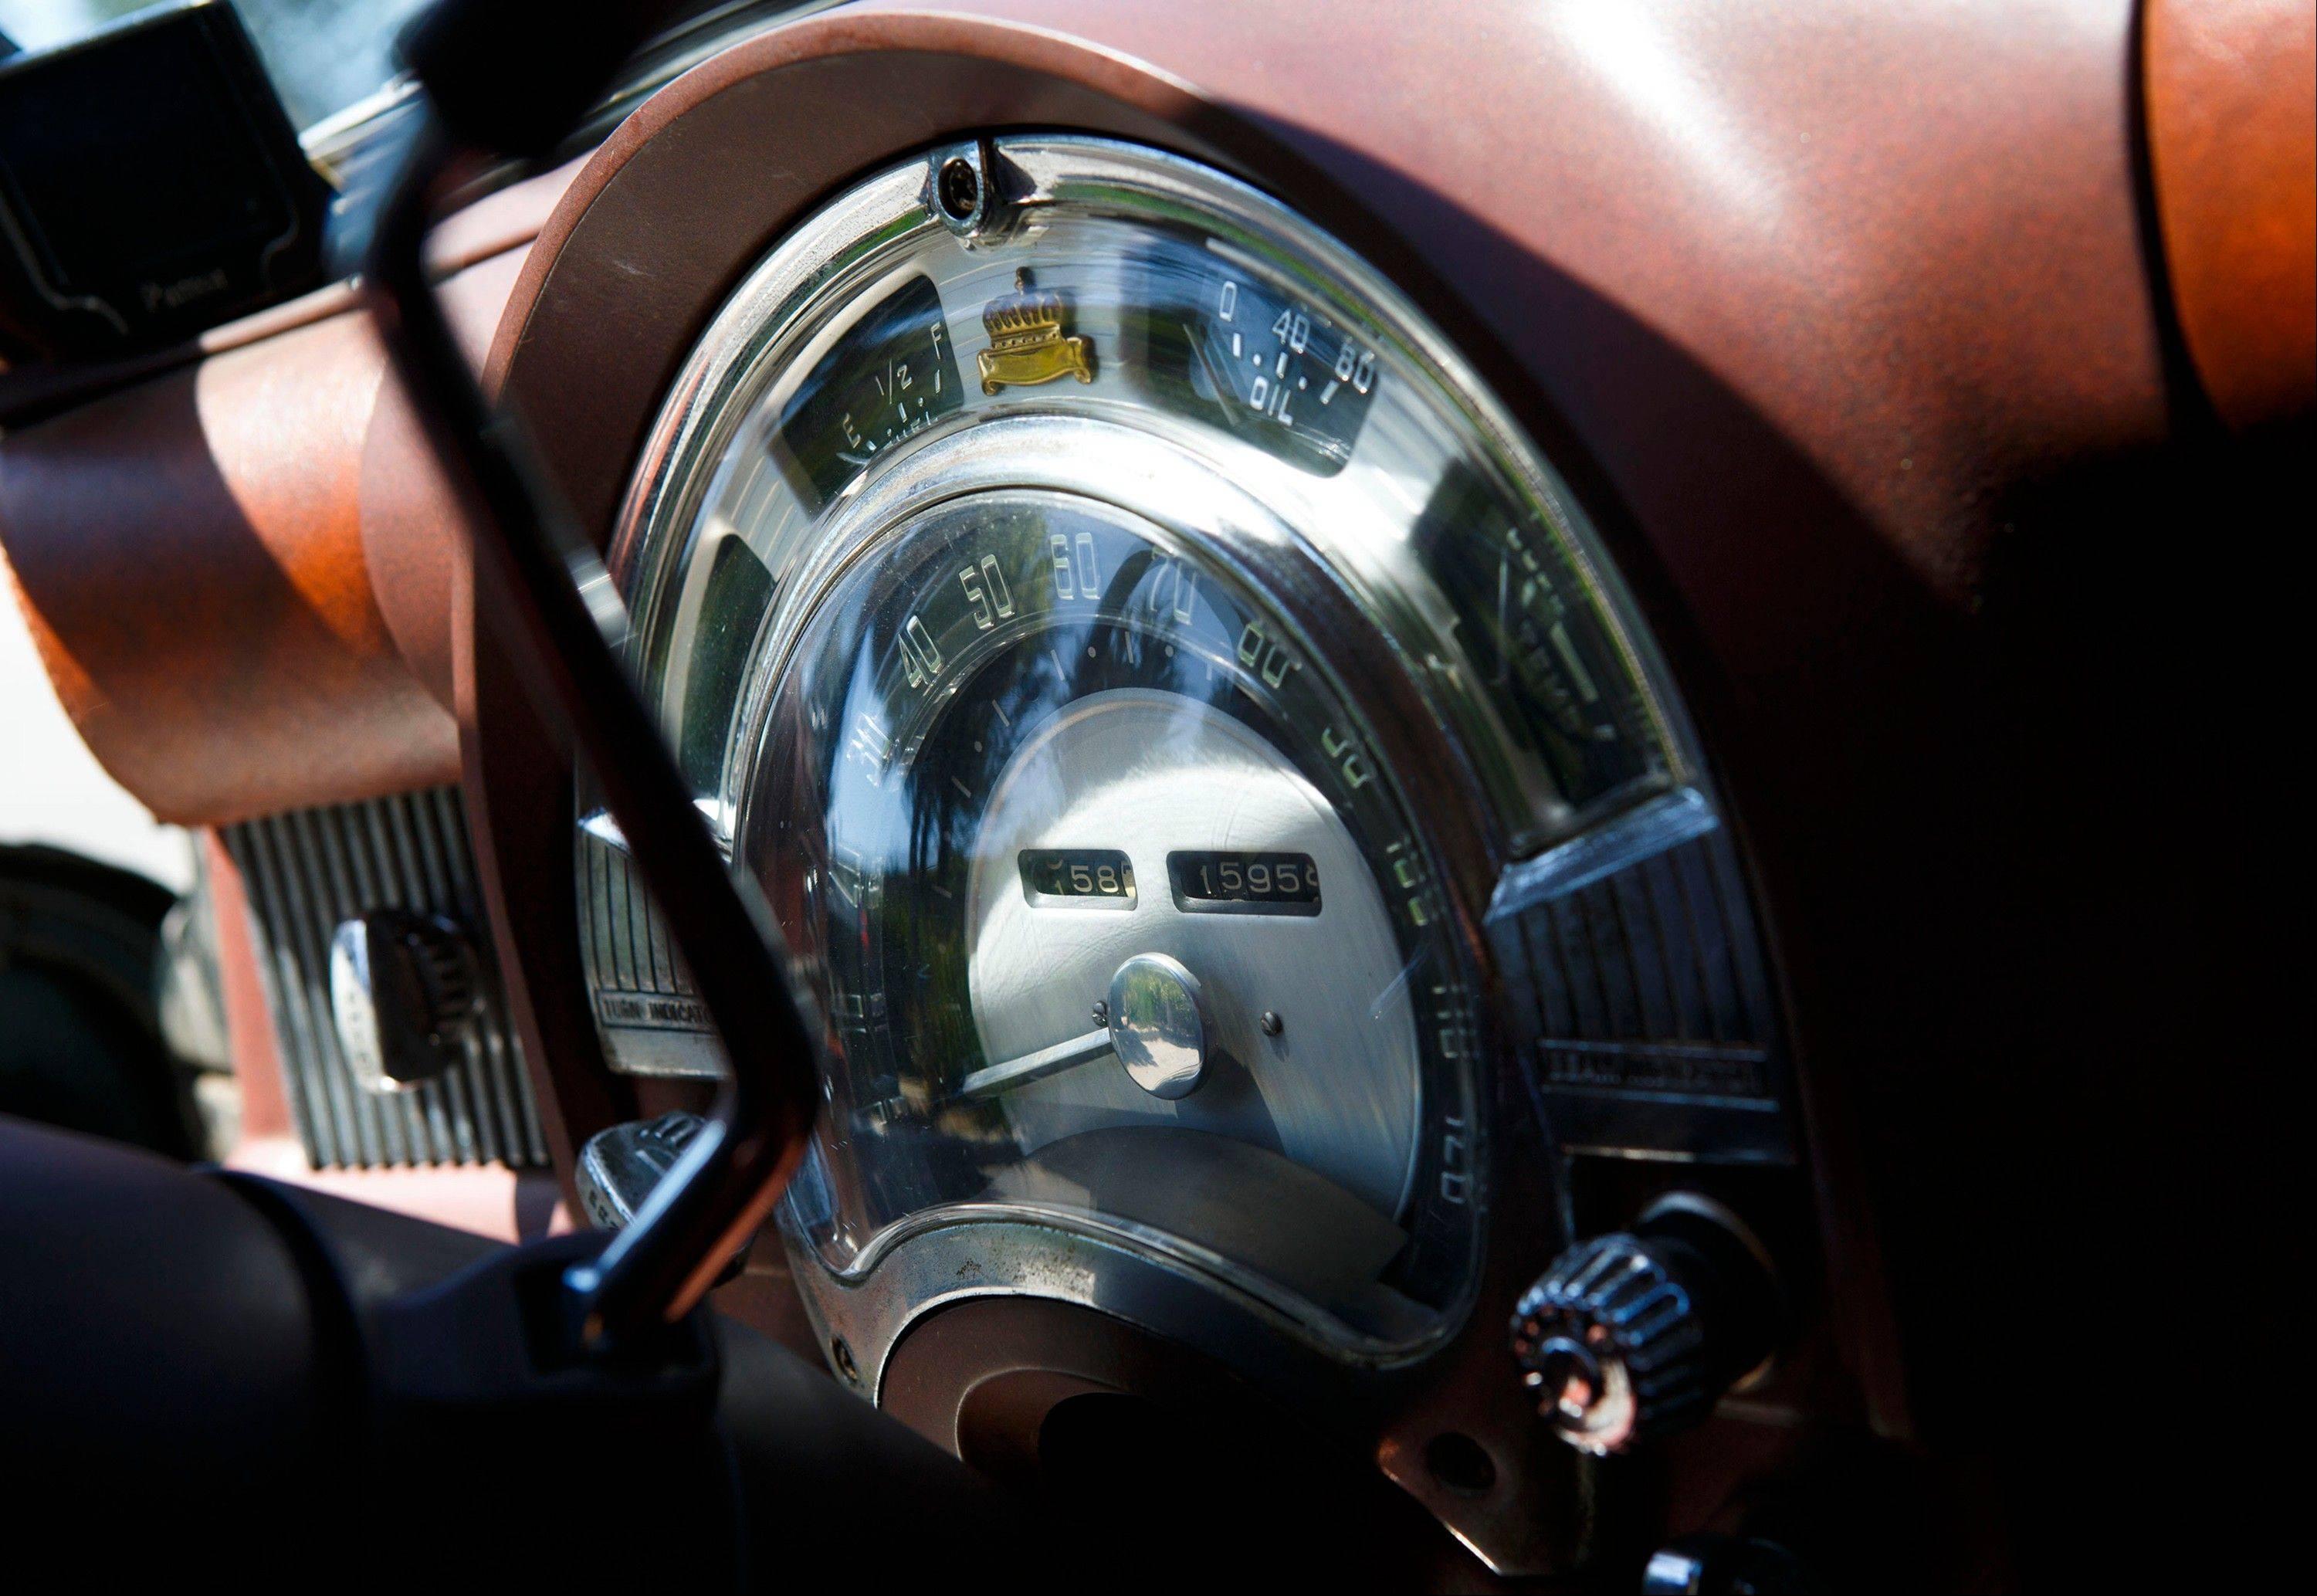 The speedometer of a 1952 Chrysler wagon.